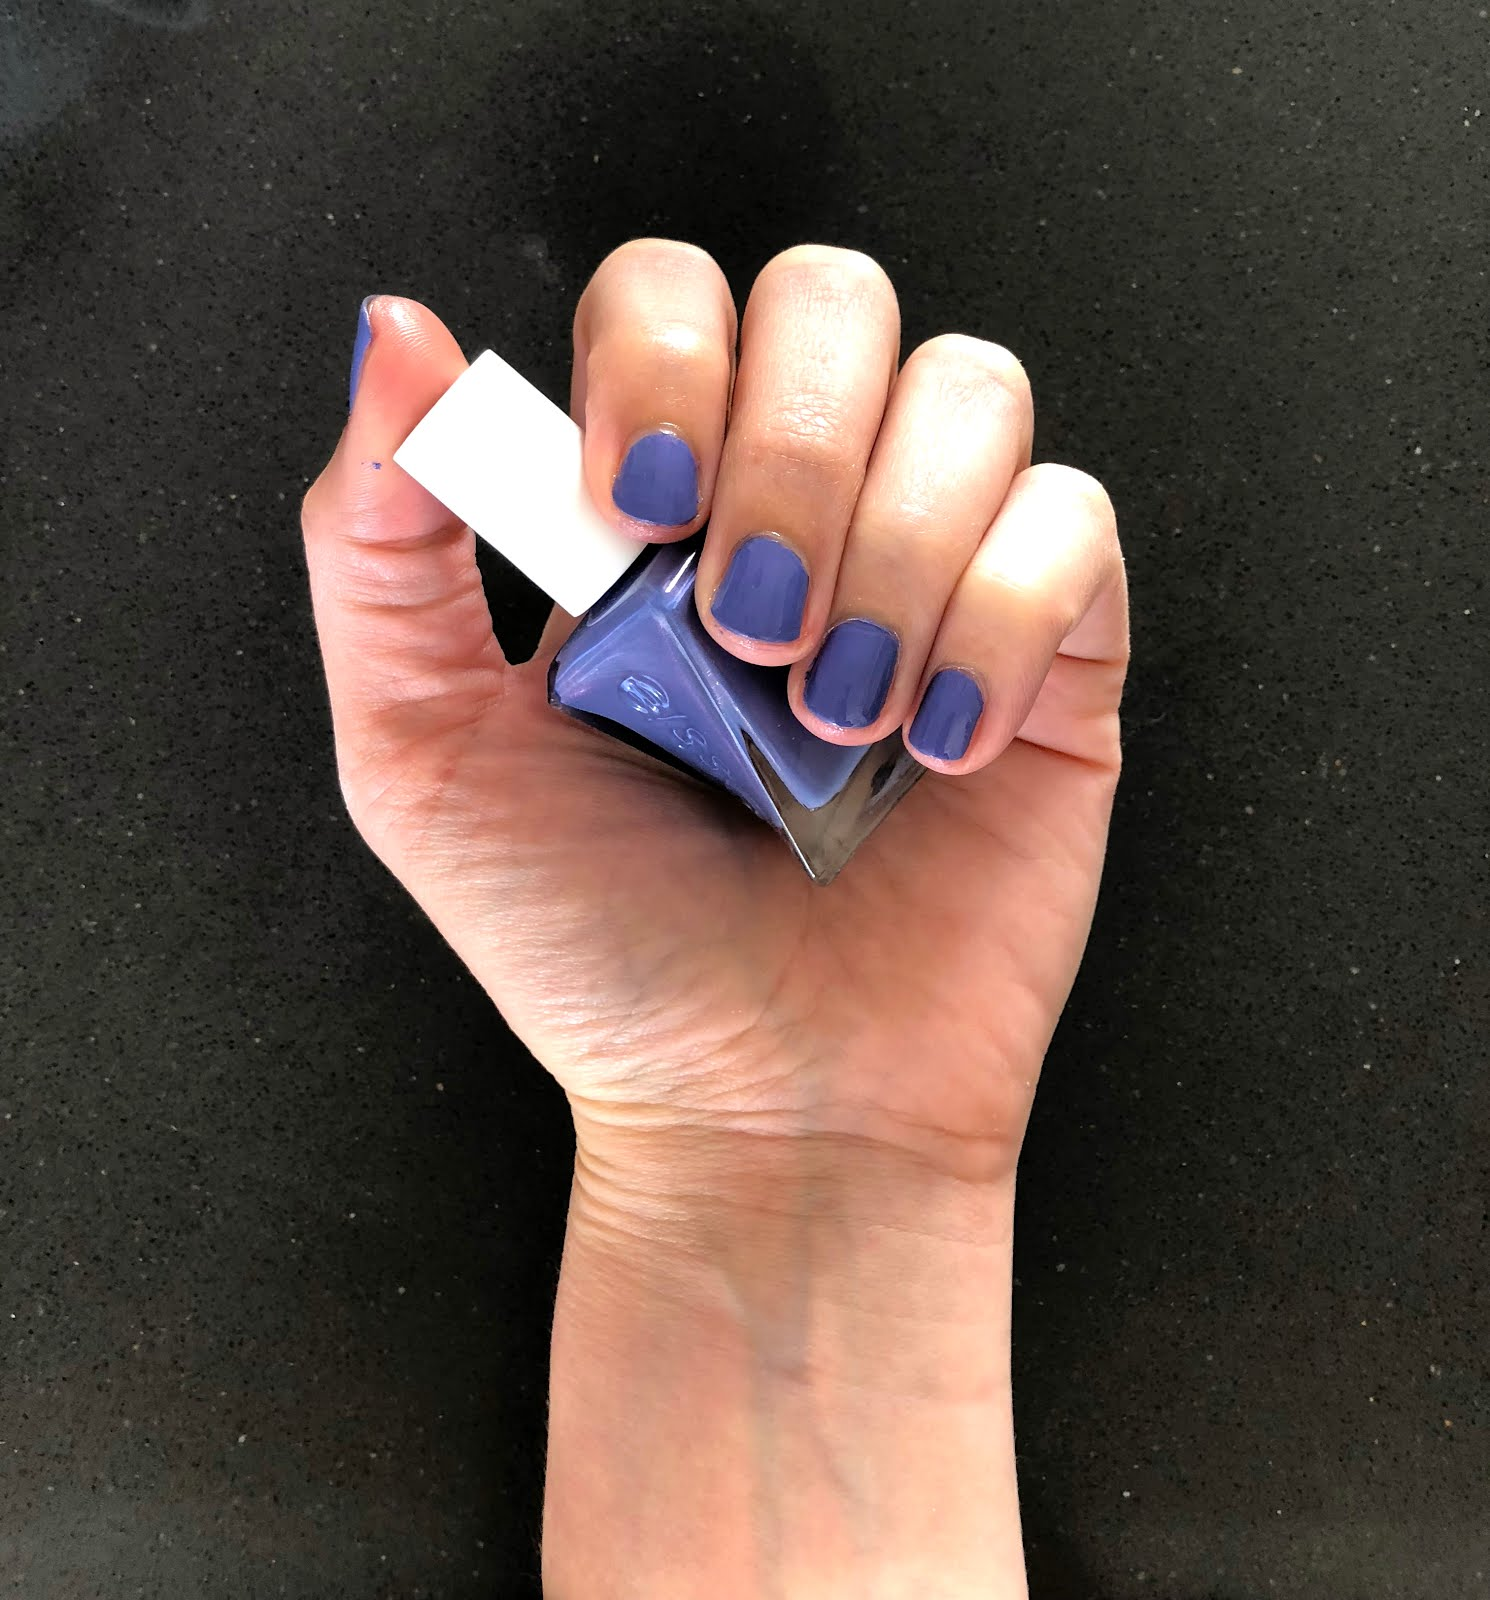 Why essie gel couture is the best nail polish ever cheryl shops giving yourself a manicure with gel couture is kind of amazing because you dont use a base coatjust two coats of color then the special topcoat solutioingenieria Images